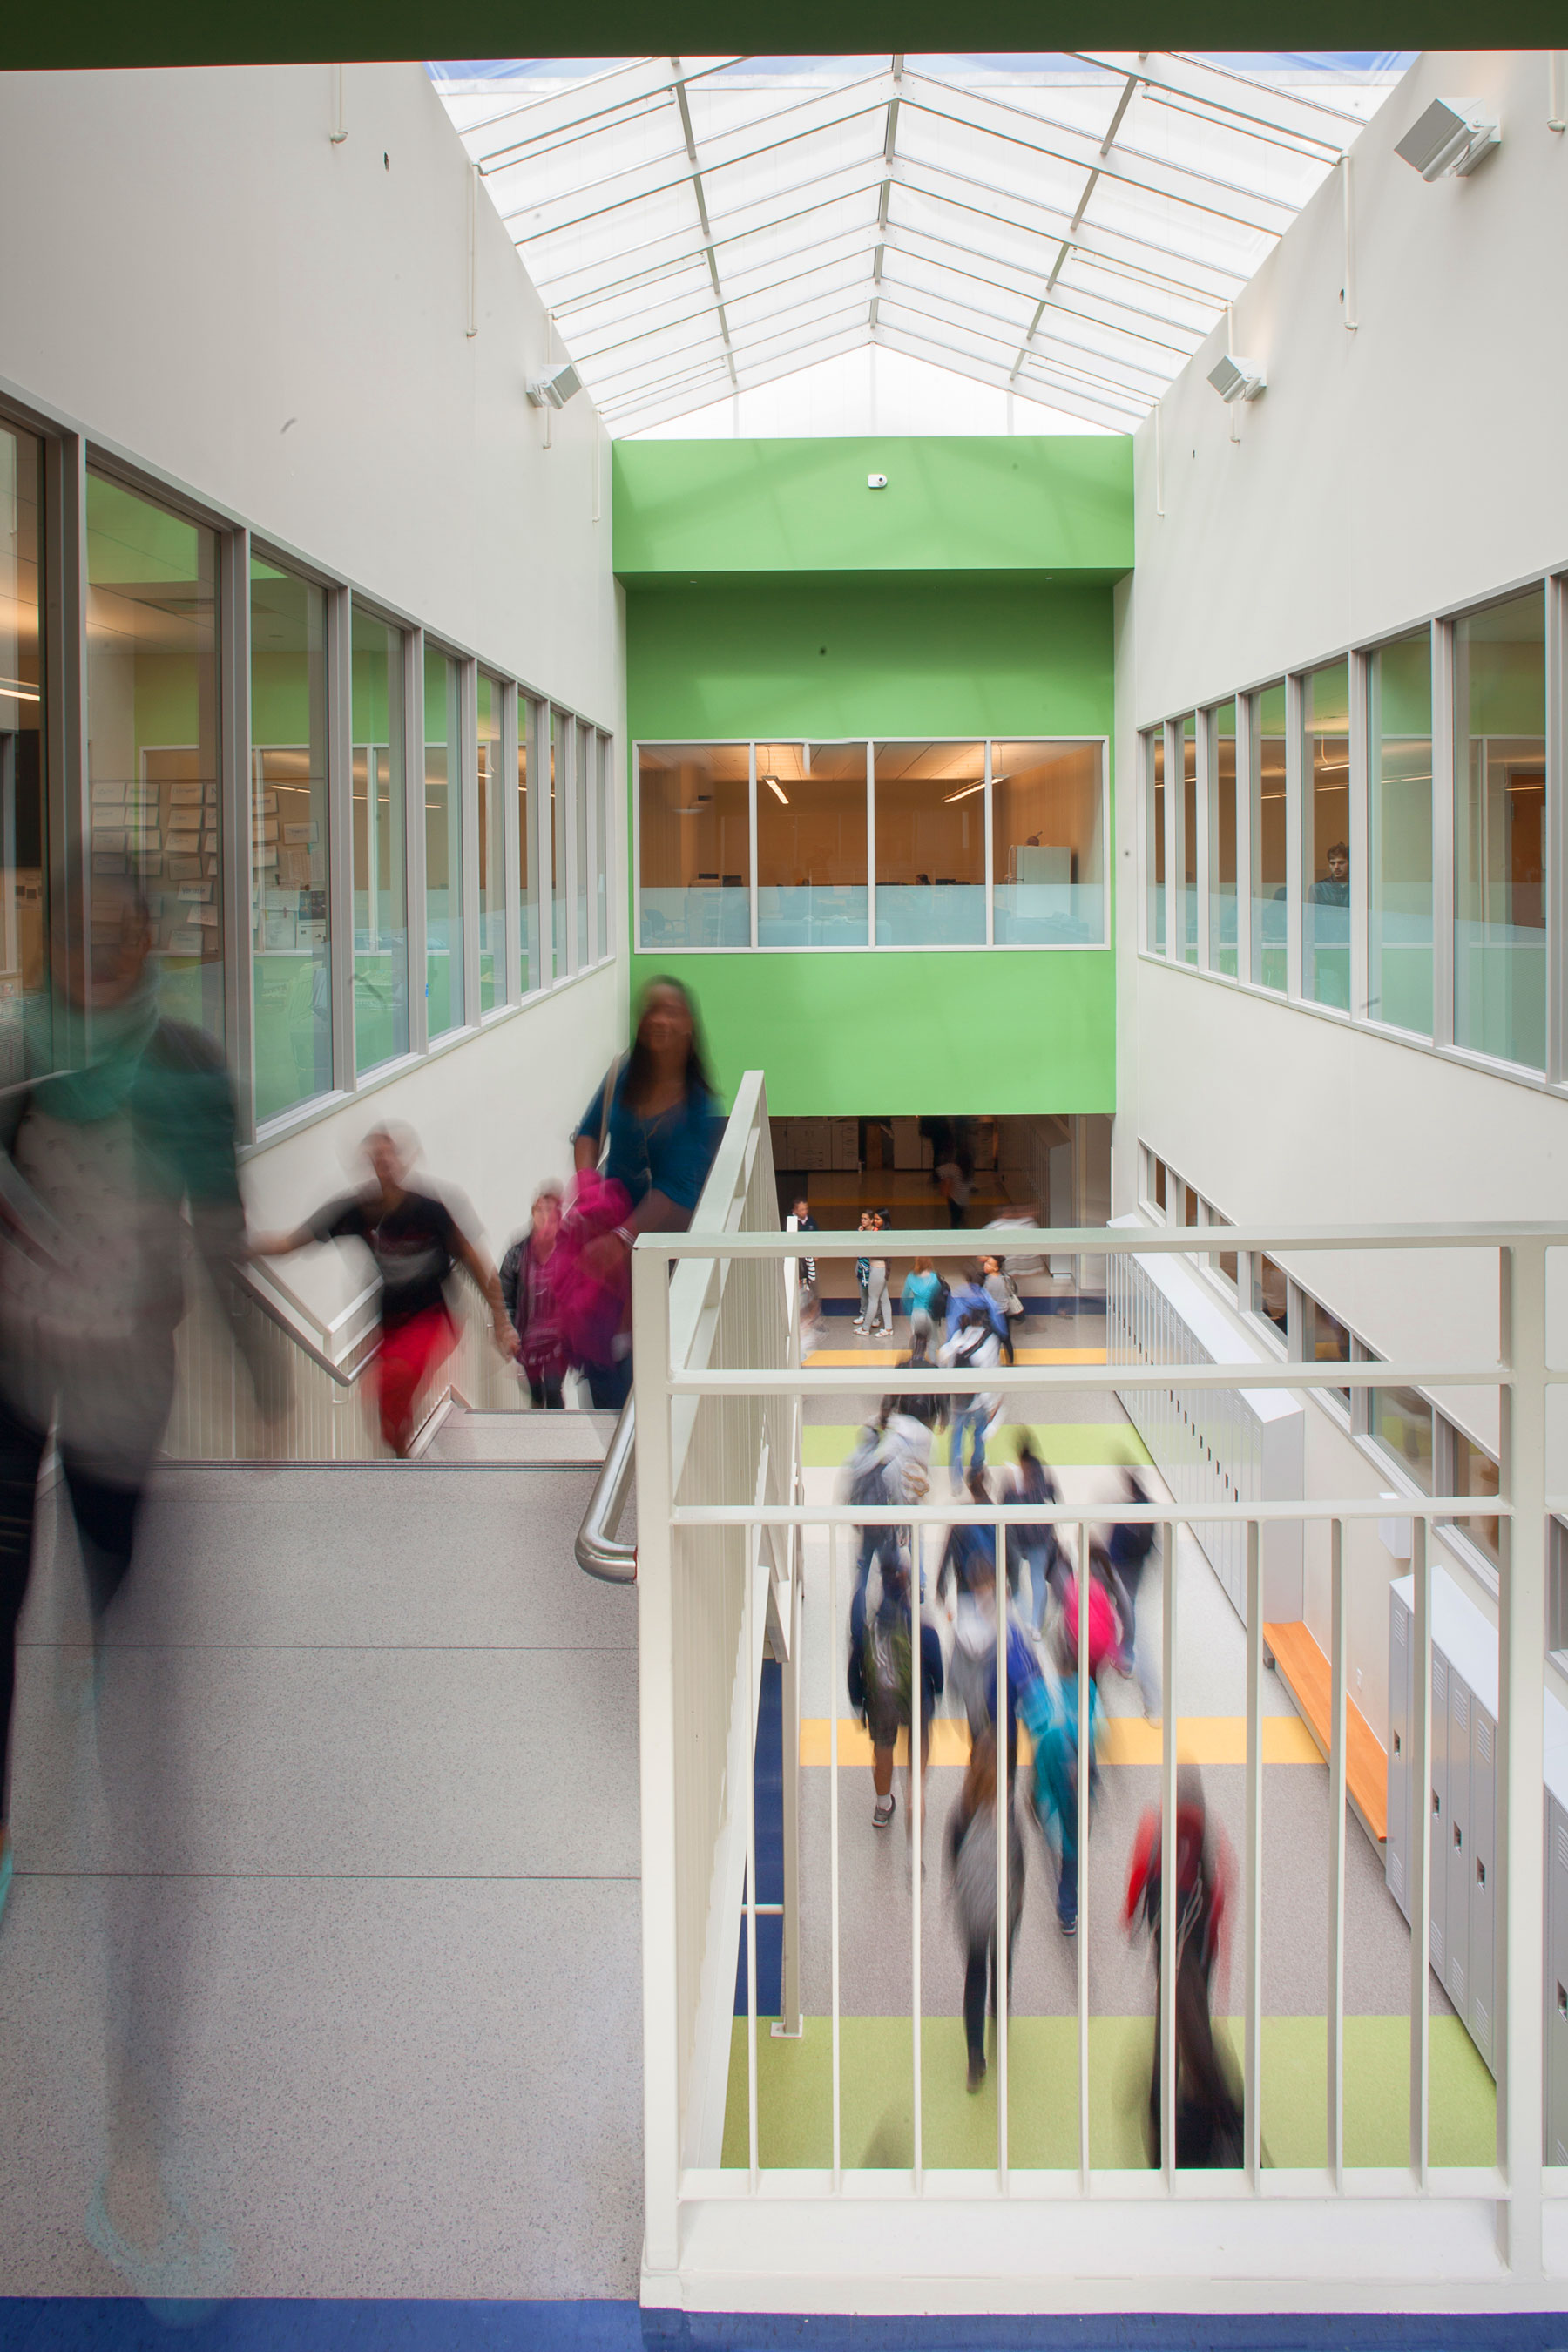 View down onto a hallway and stairs marked by green and white floors and walls under a skylight with students walking.